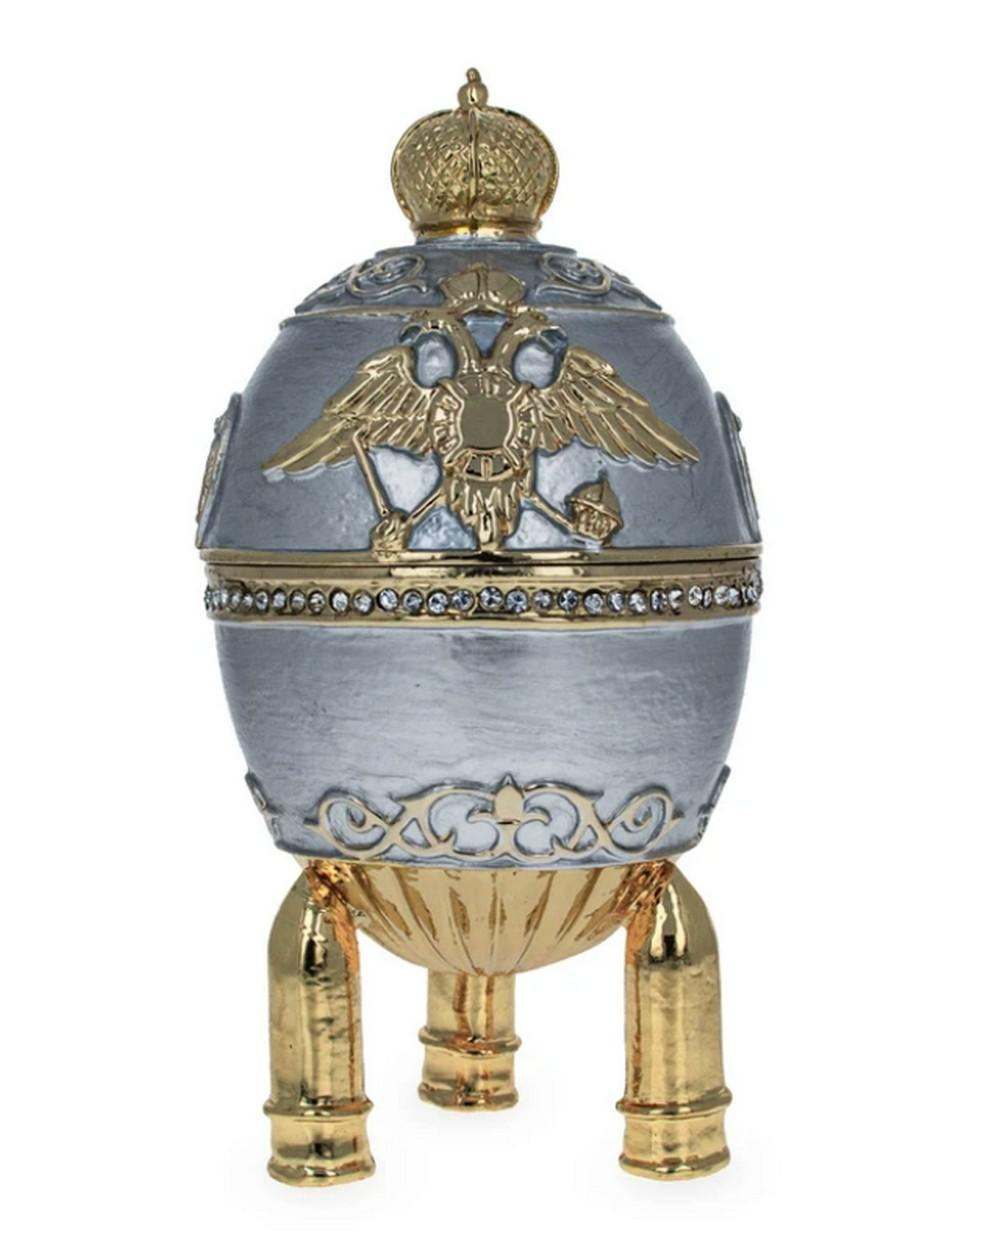 1916 Royal Russian Steel Military Inspired Egg